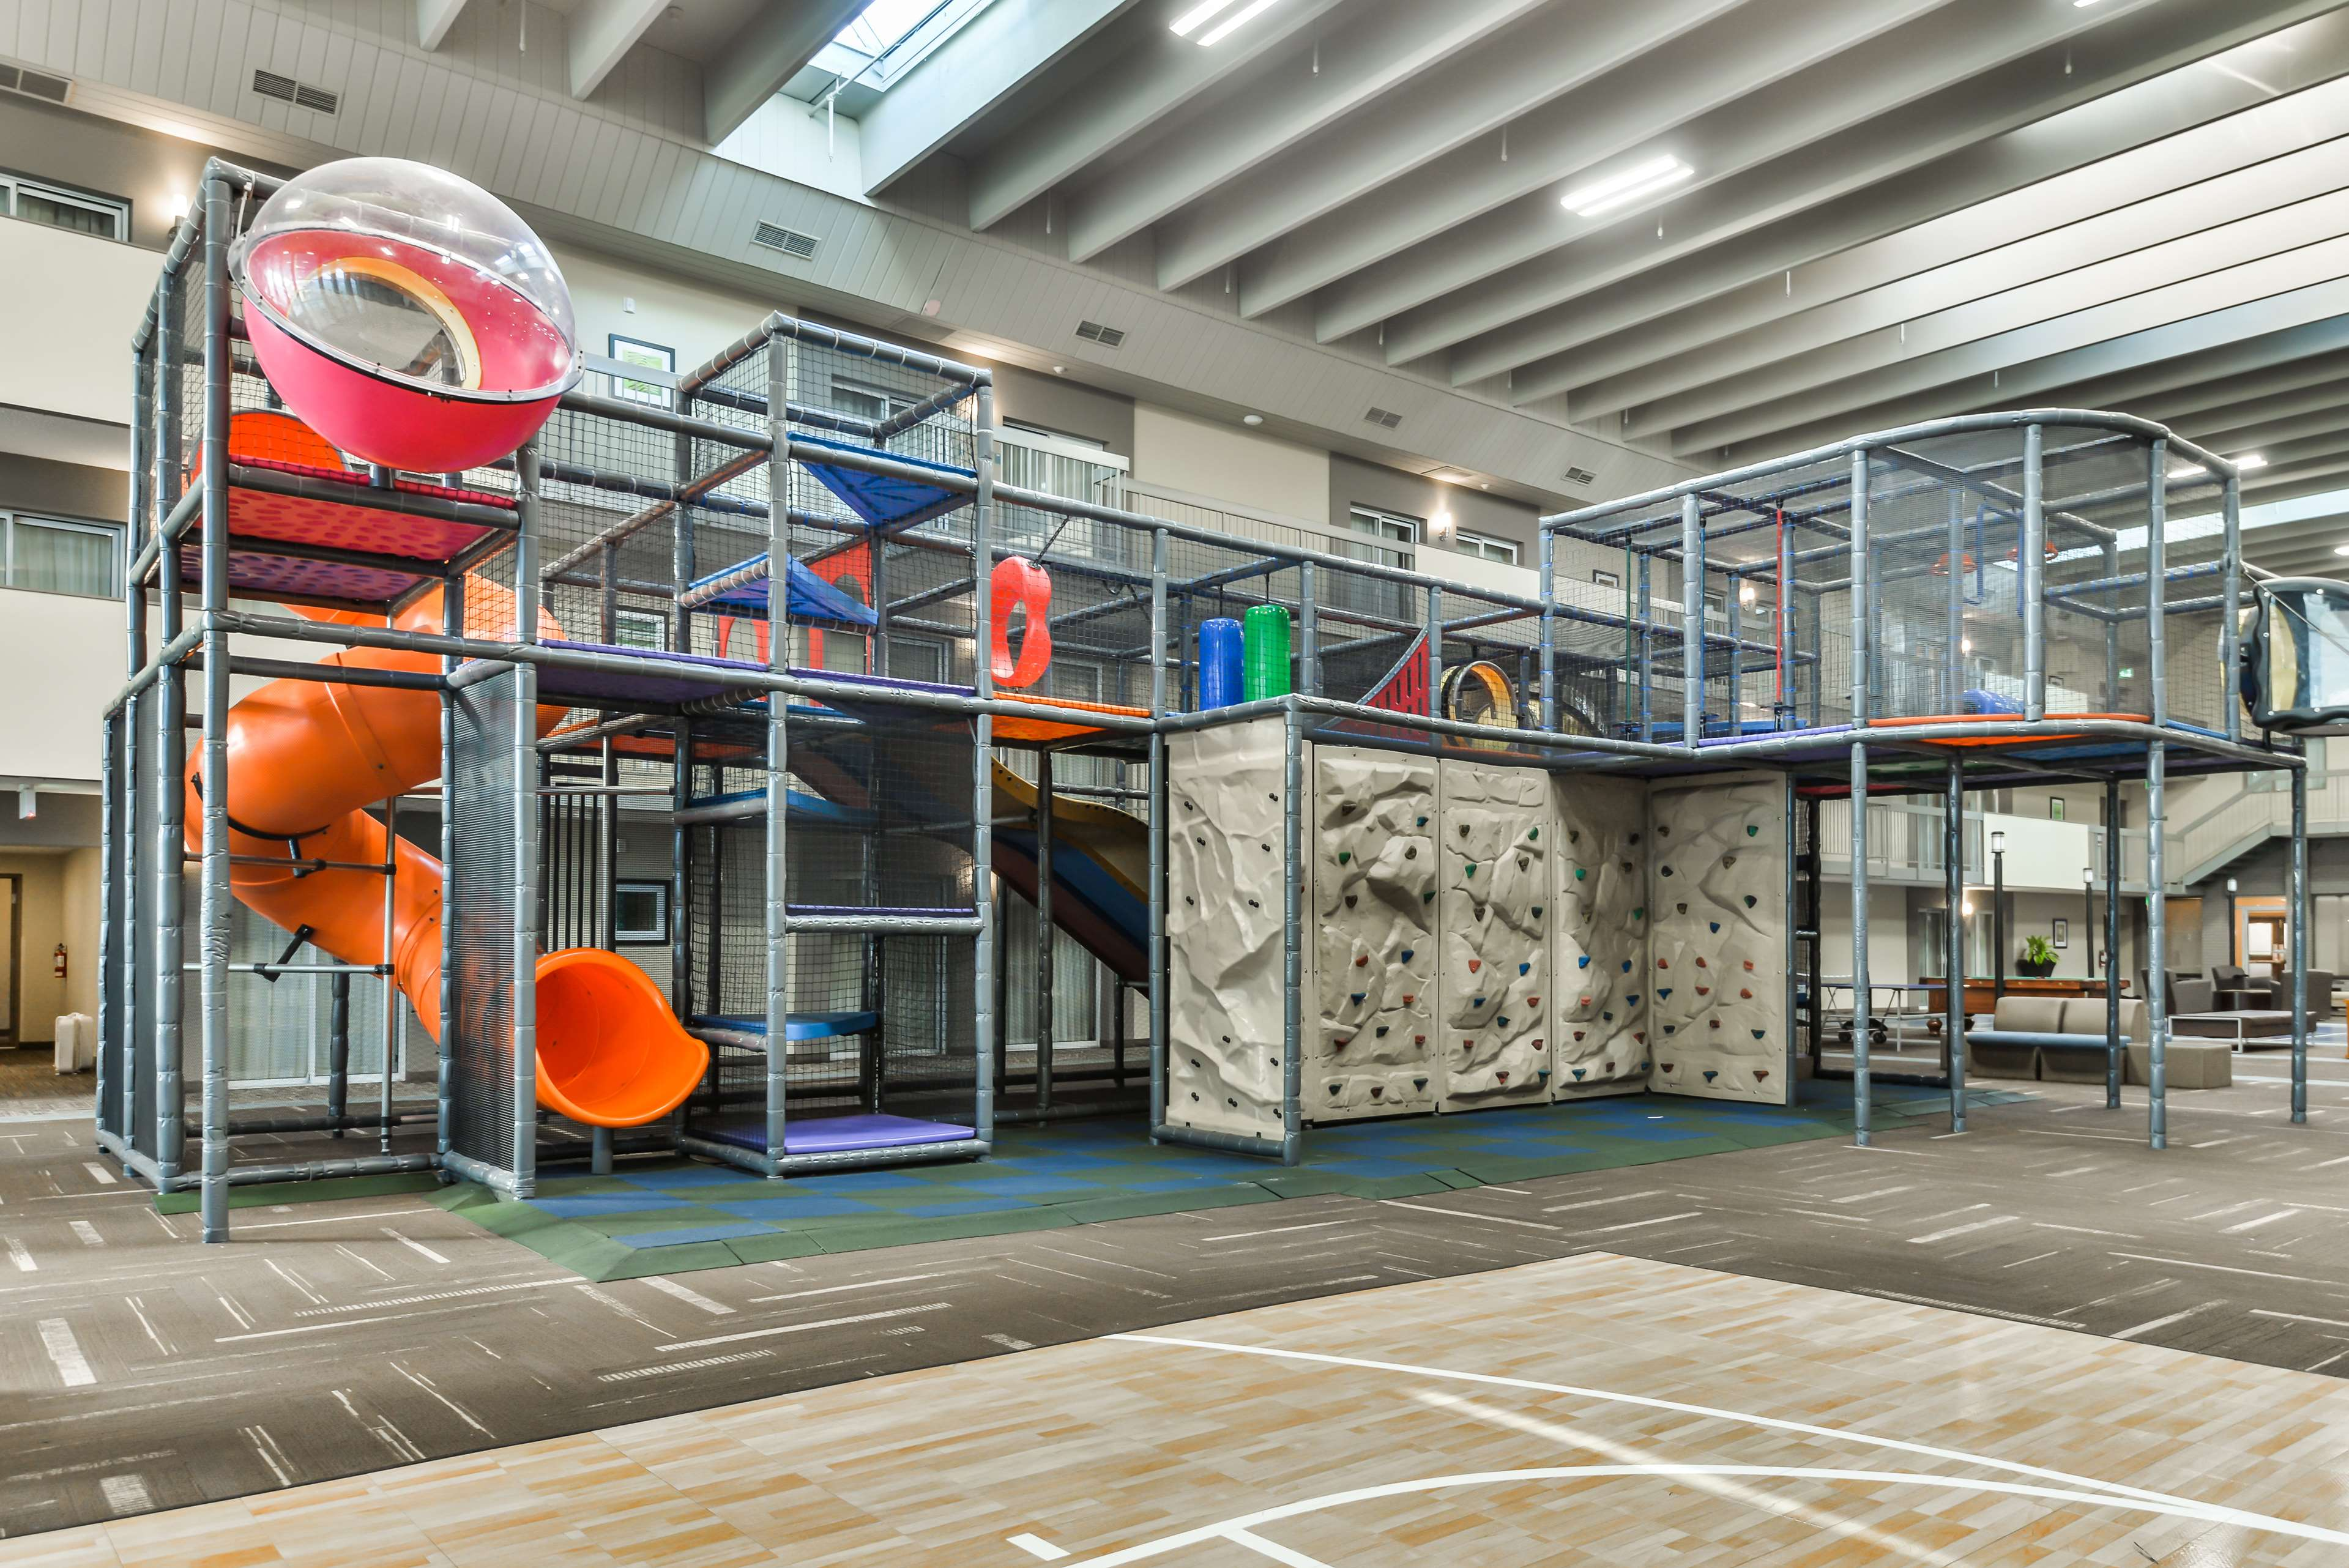 Indoor playground Best Western Plus Leamington Hotel & Conference Centre Leamington (519)326-8646